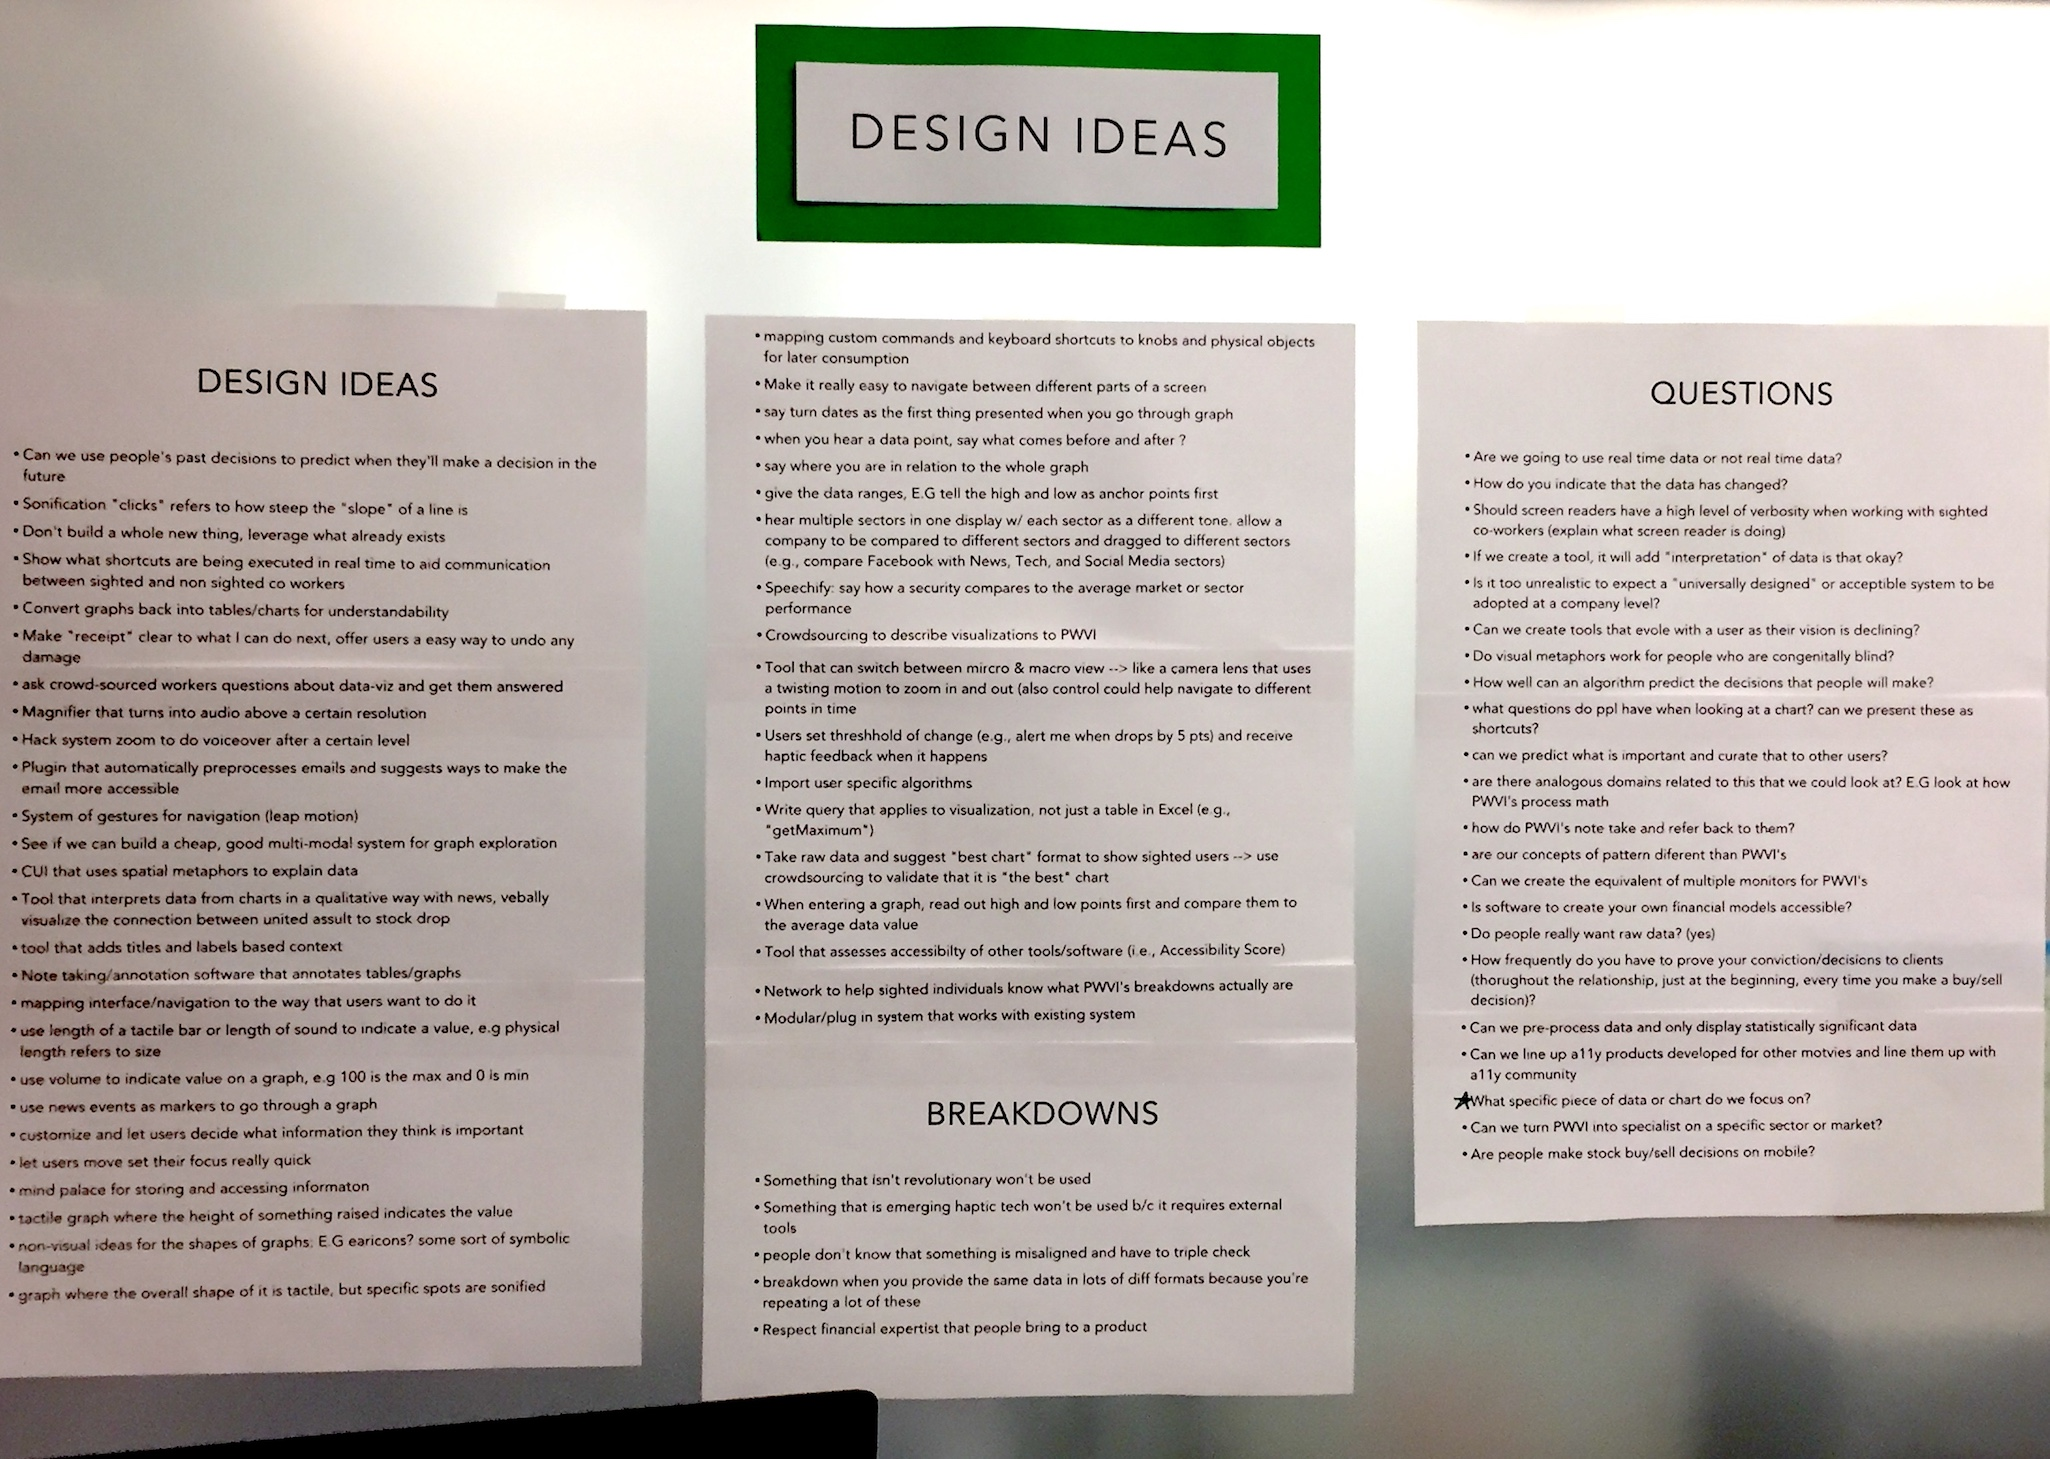 Three long white sheets with a white label on top that says 'Design Ideas.' The first sheet lists dozens of design ideas, the second sheet lists 'breakdowns', and the third sheet lists 'questions.' Text too small to read.